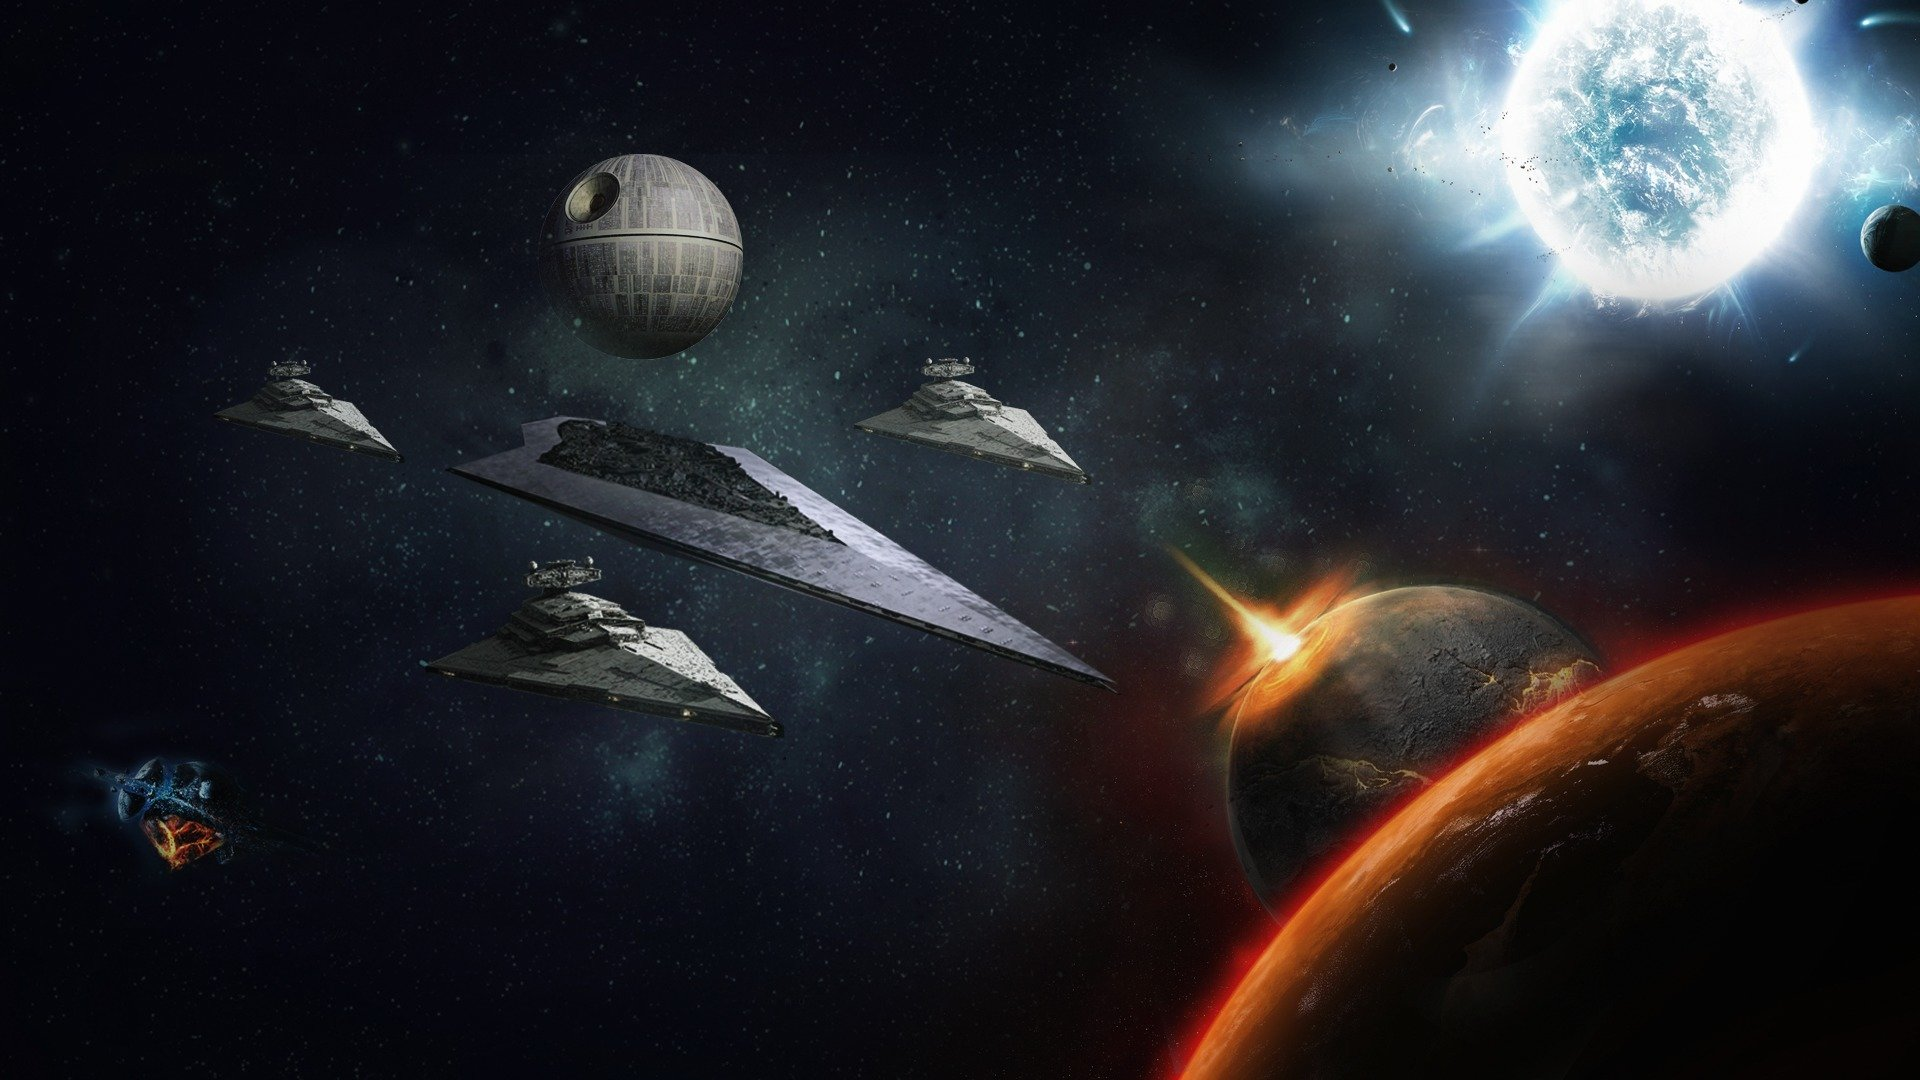 star wars desktop wallpapers 1920x1080